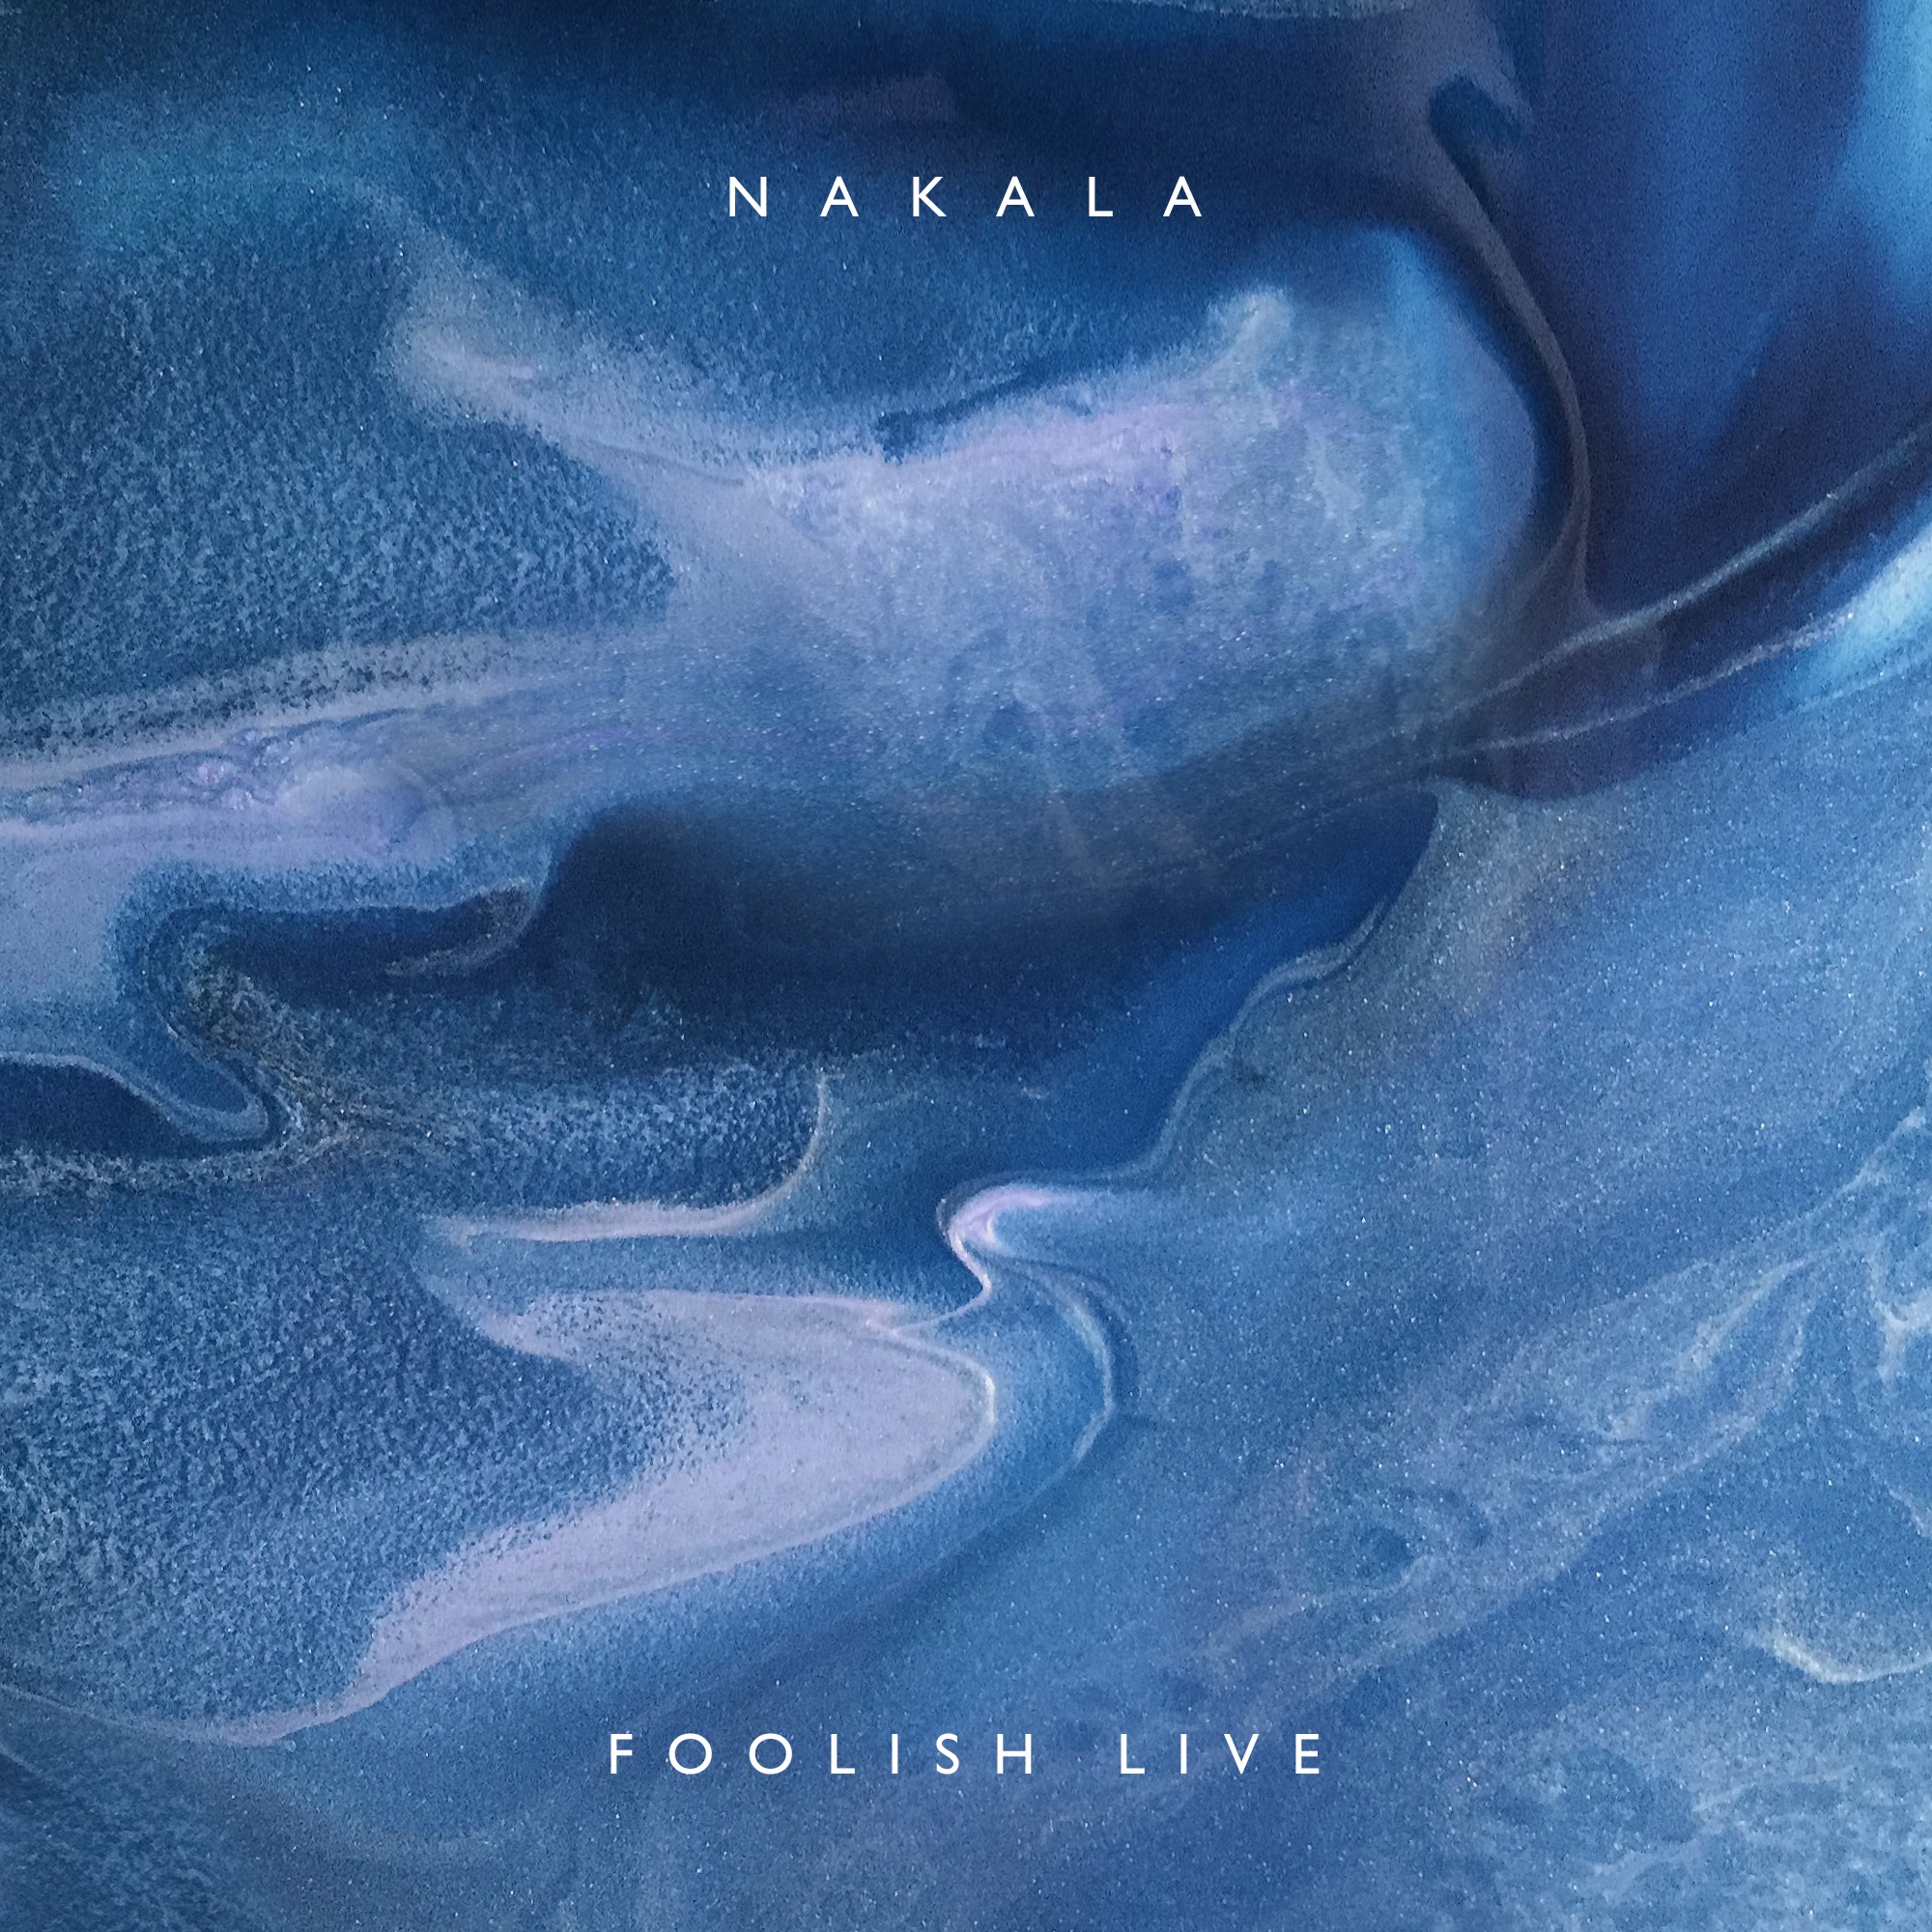 nakala foolish live artwork final.png